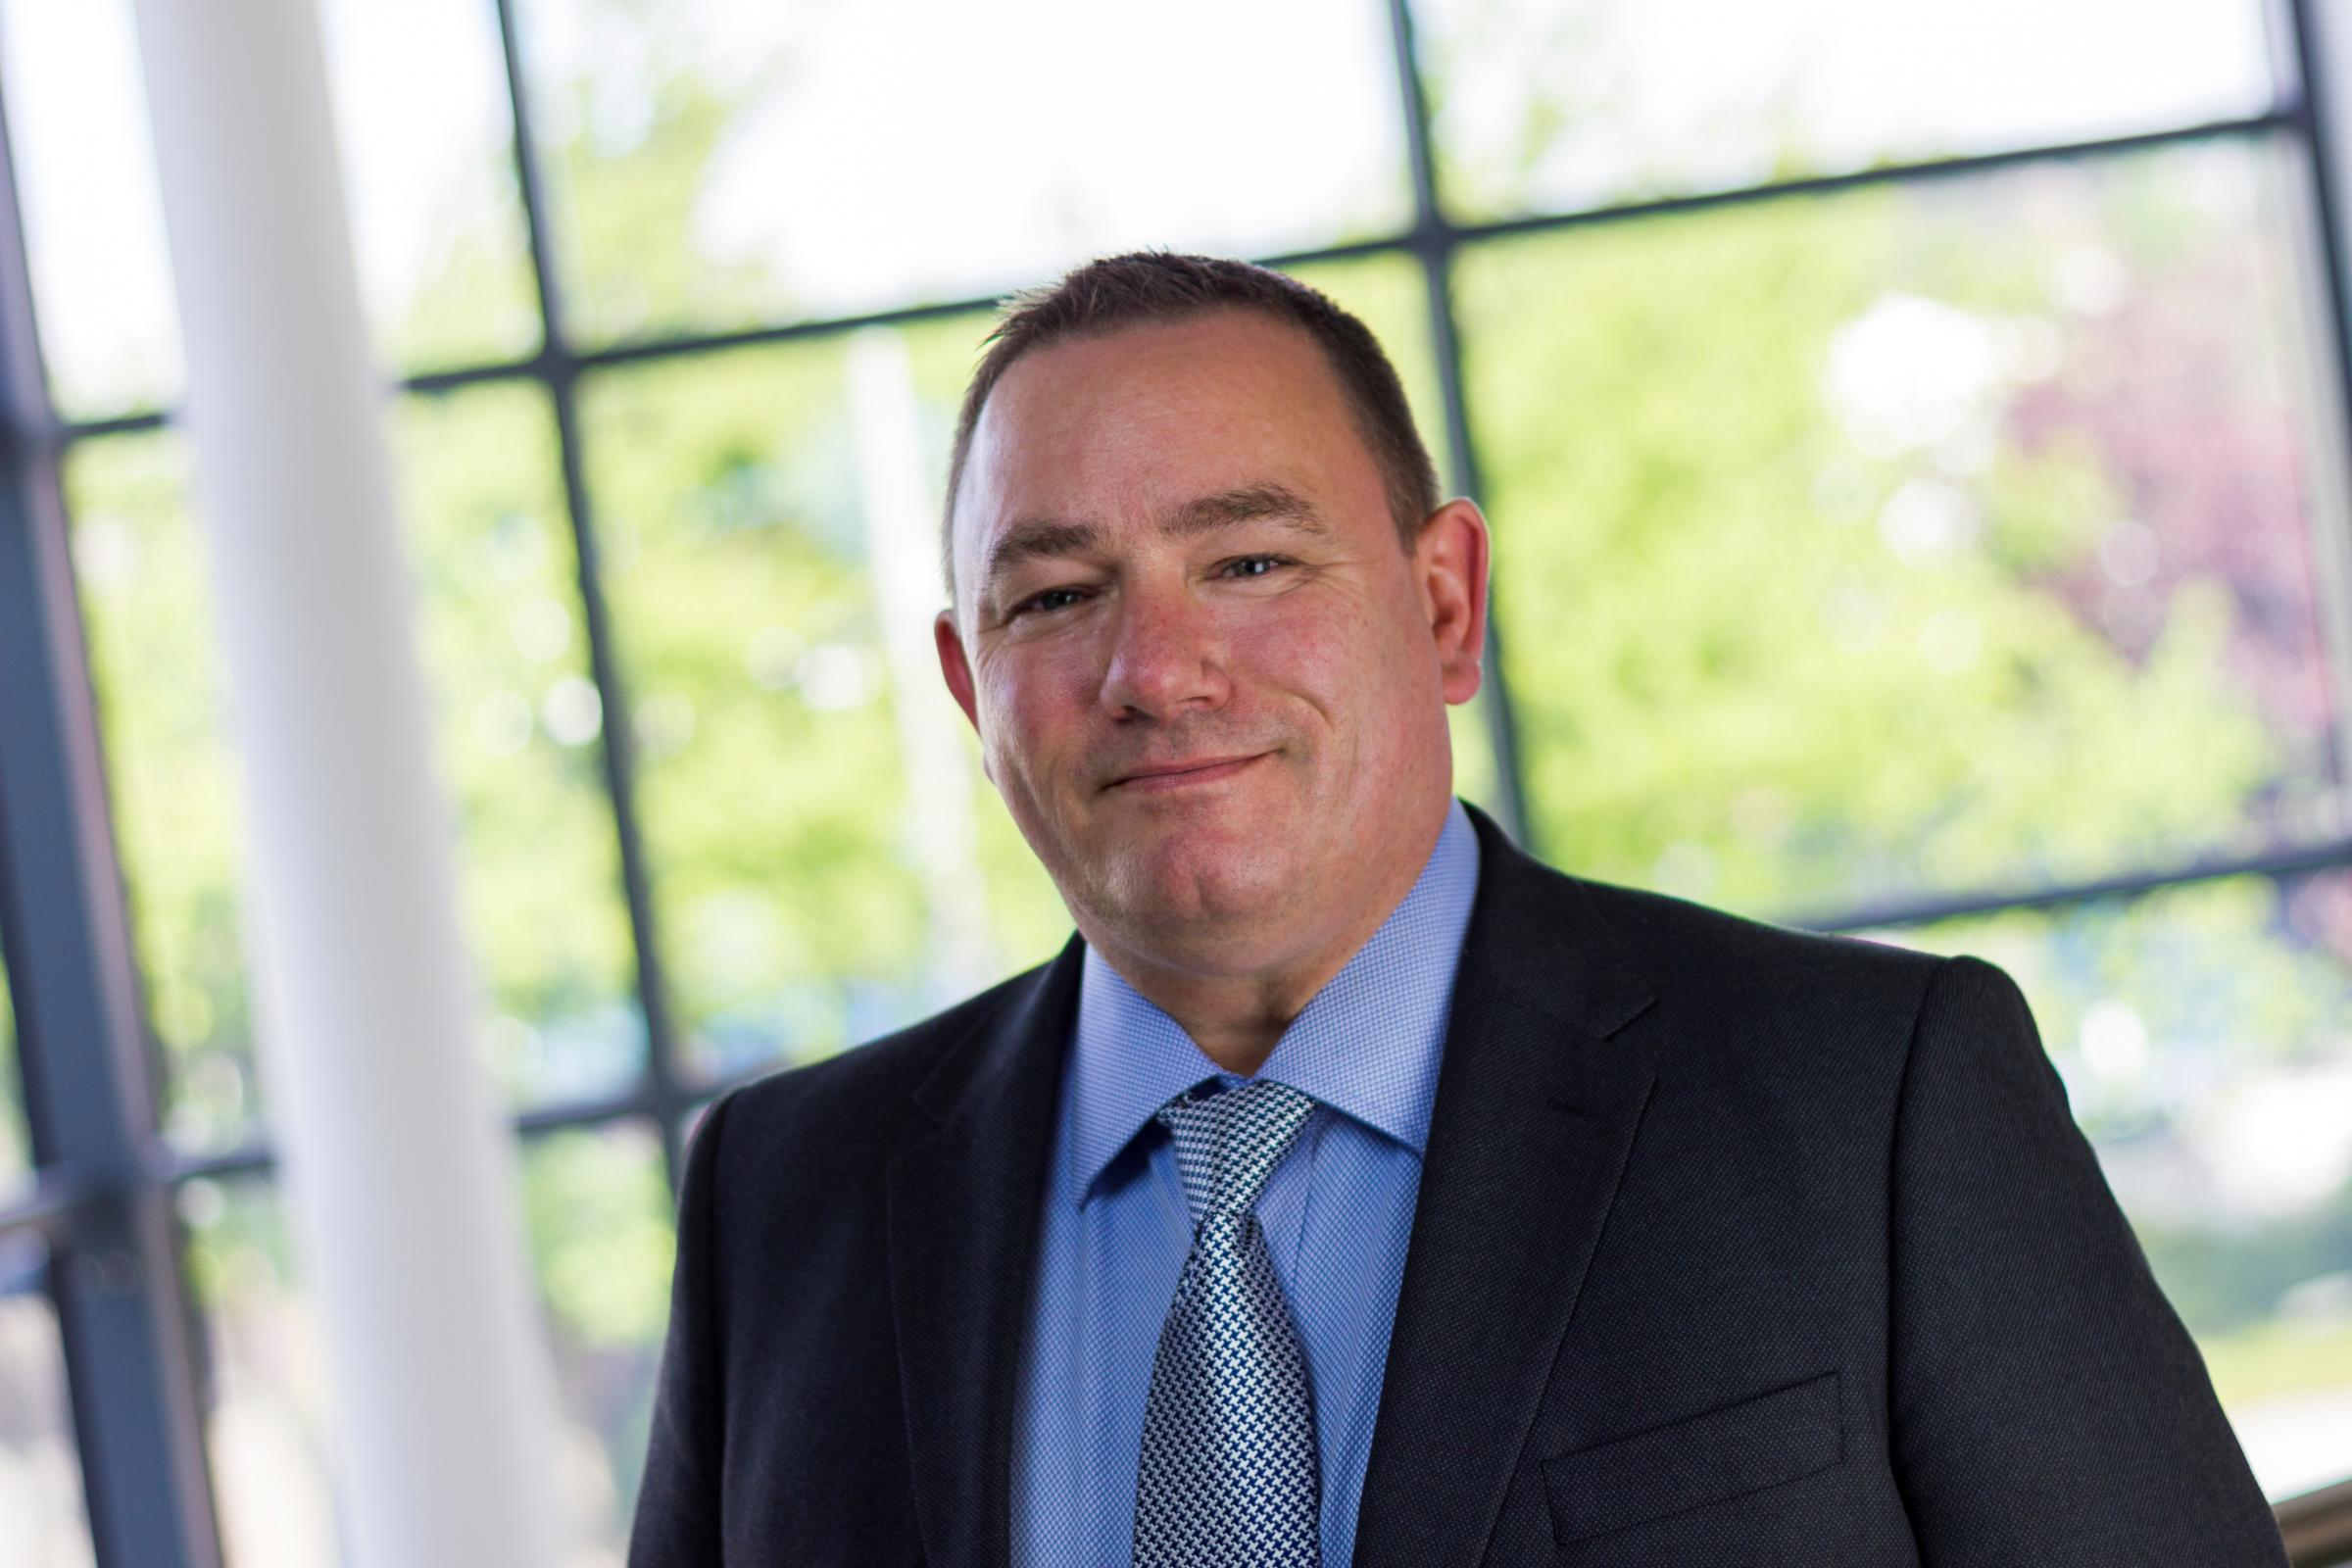 Paul Dodsworth, business unit director for Wates Construction North East and Yorkshire